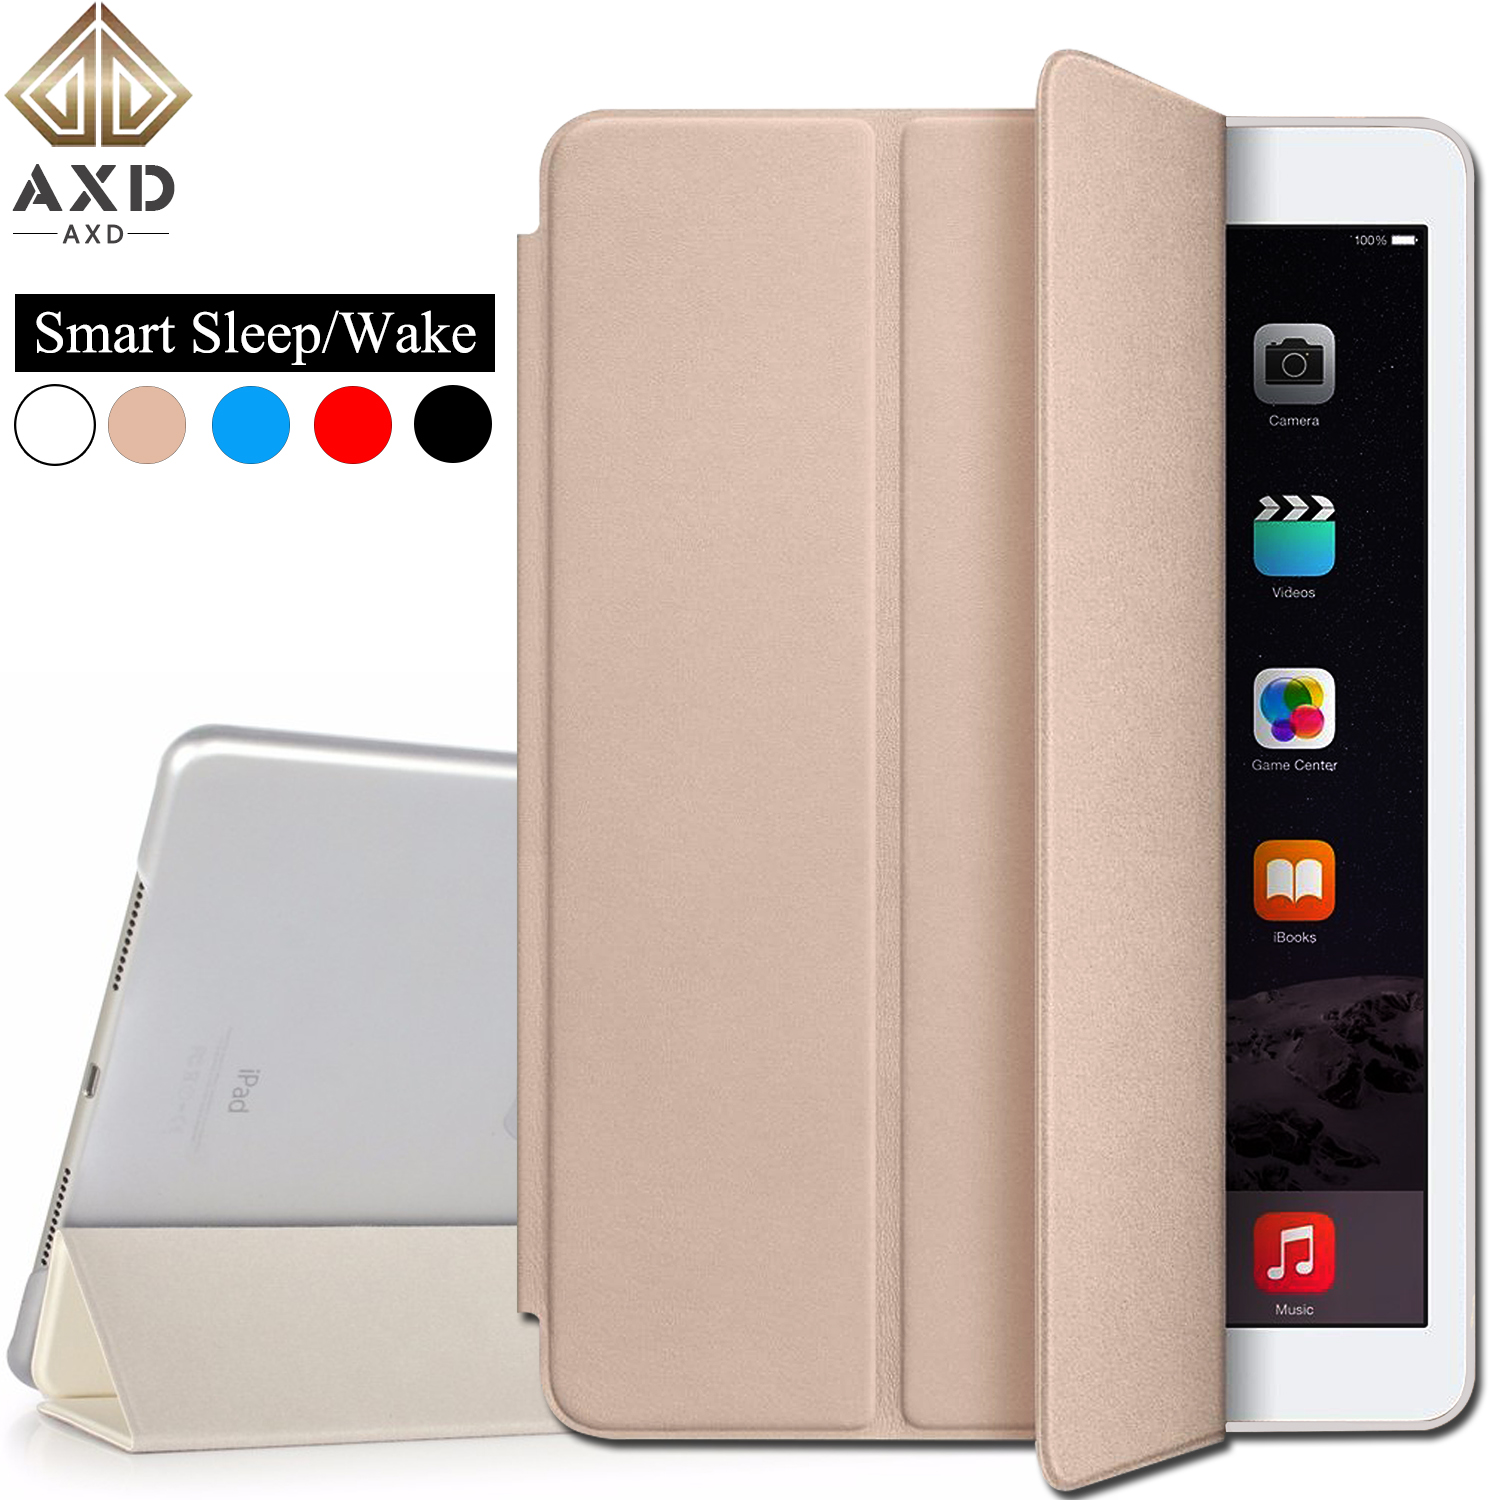 AXD Flip PU Leather Case For Xiaomi Mi Pad 2 3 7.9-inch Fundas Smart Sleep Wake Cover Stand Ultra Slim Capa Coque For Pad2 Pad3